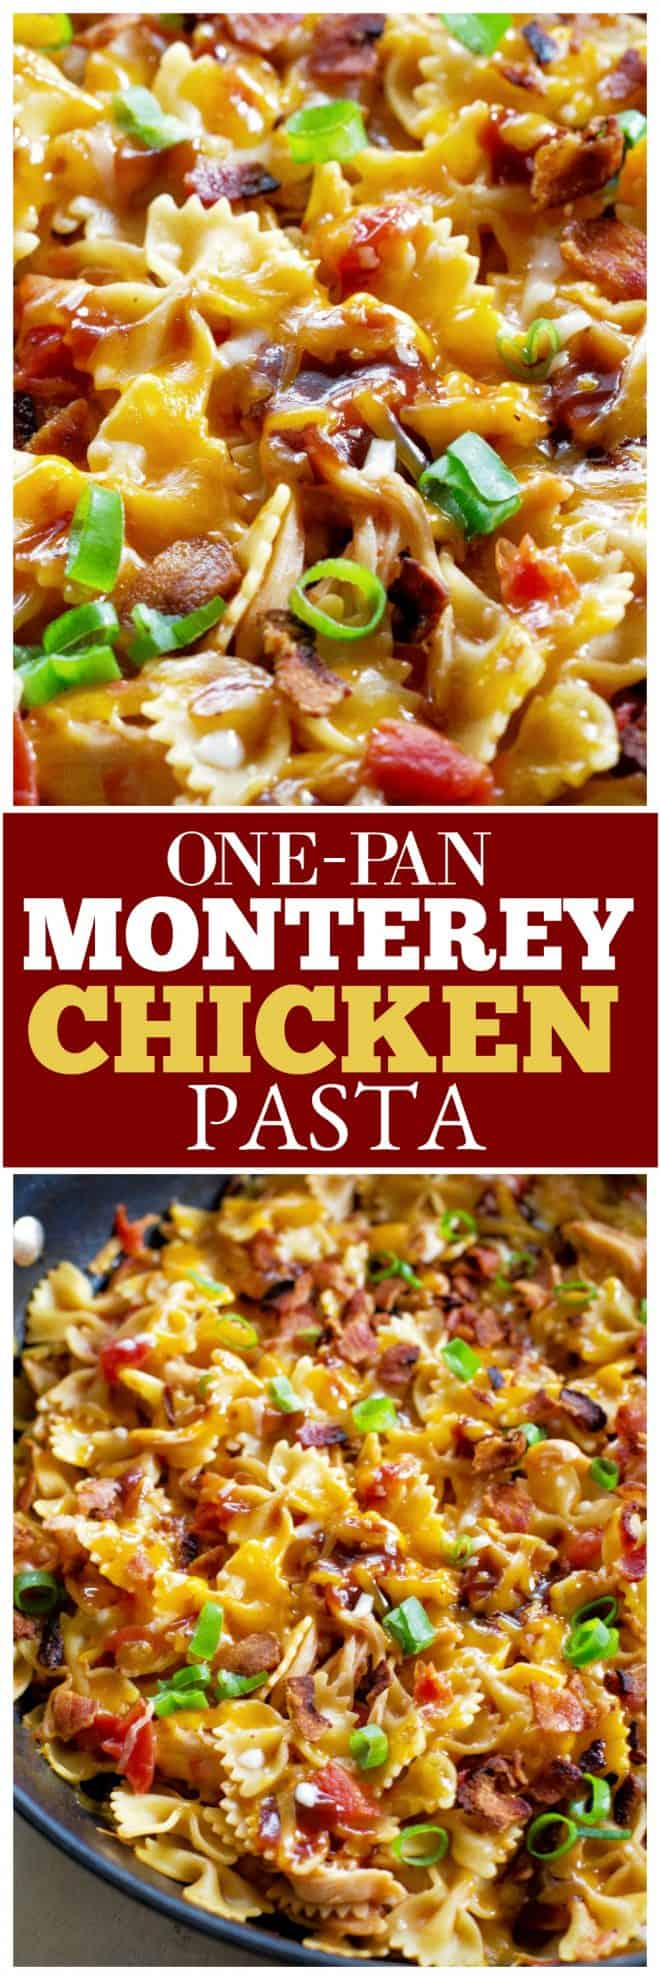 one-pan monterey chicken pasta